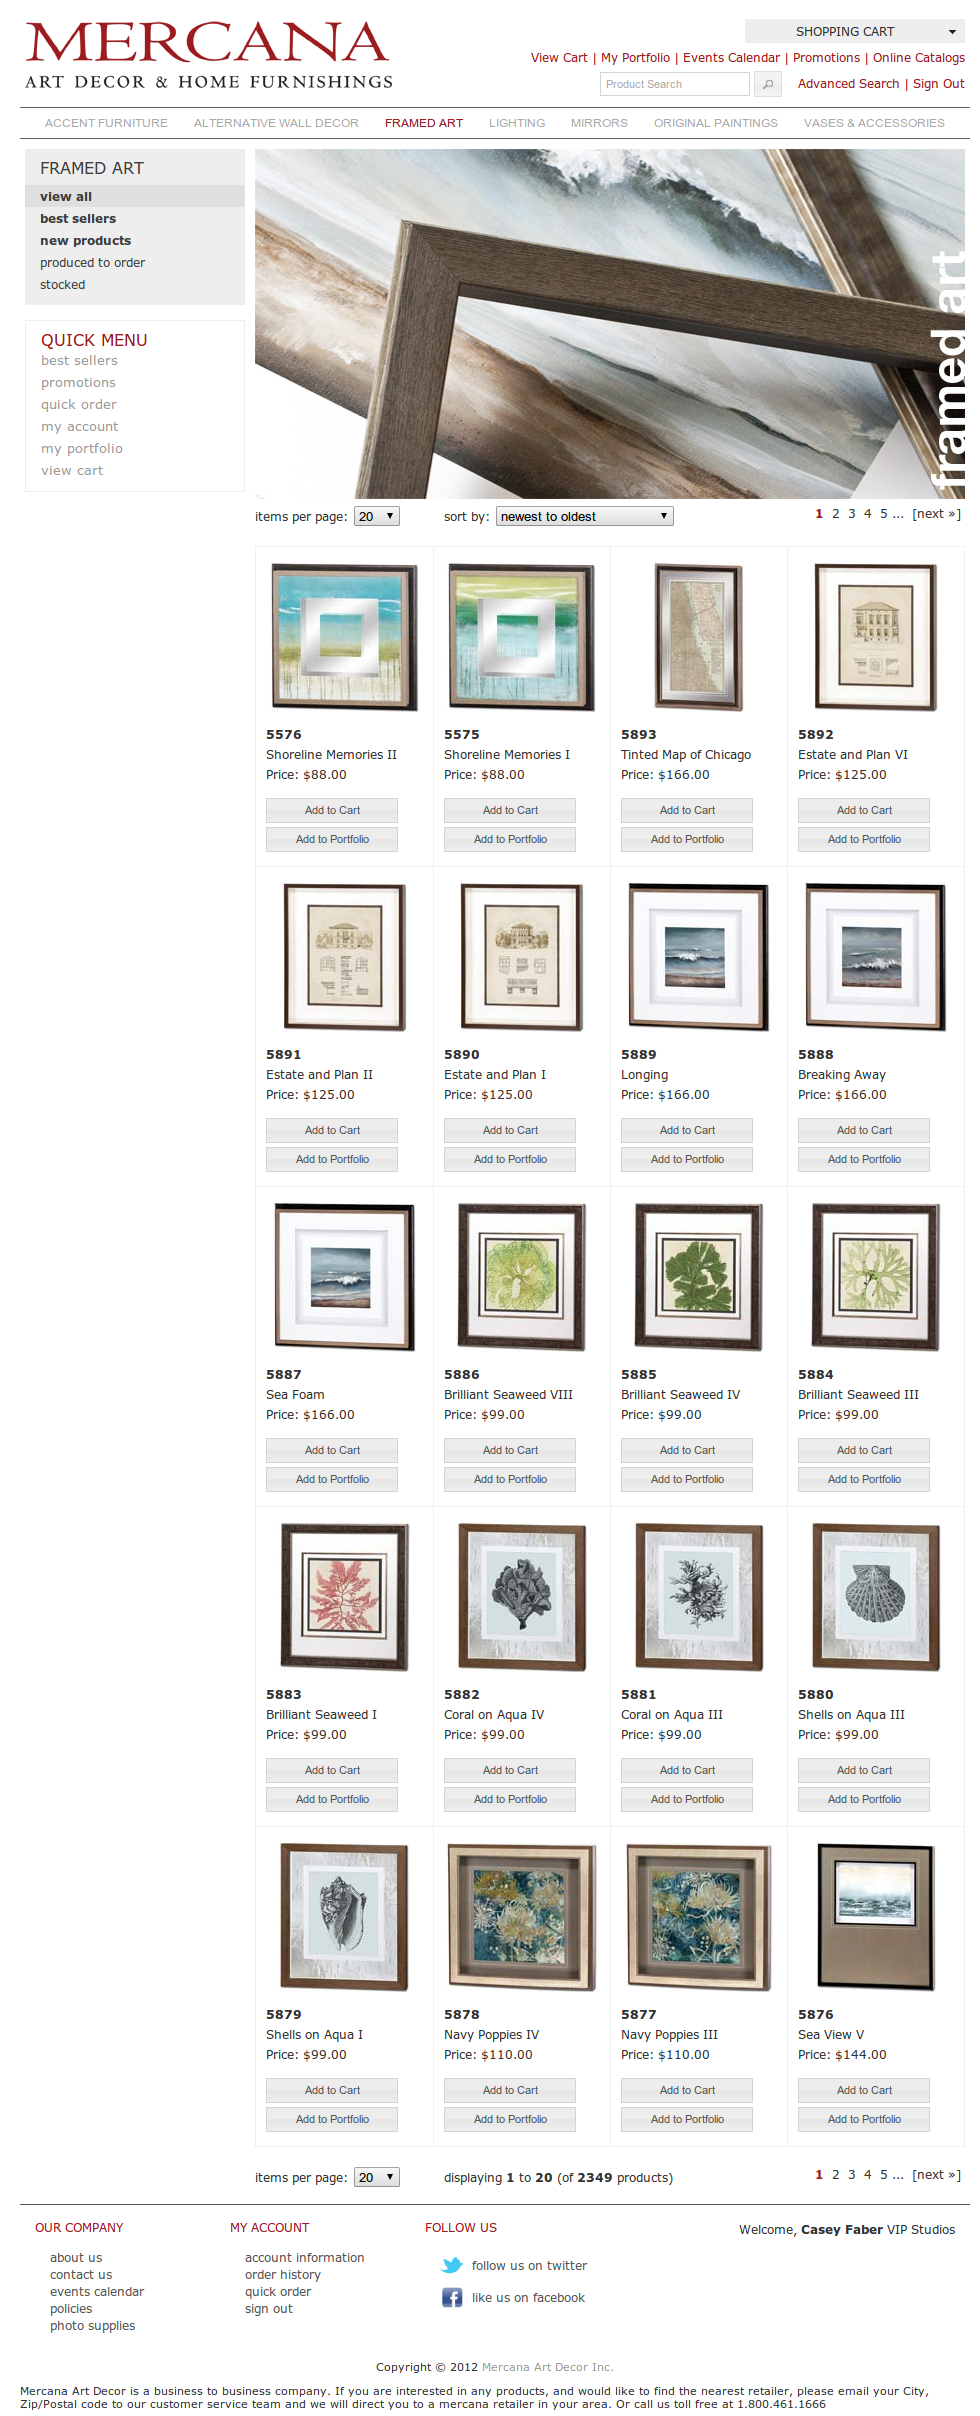 Framed Art | Mercana Art Decor & Home Furnishings